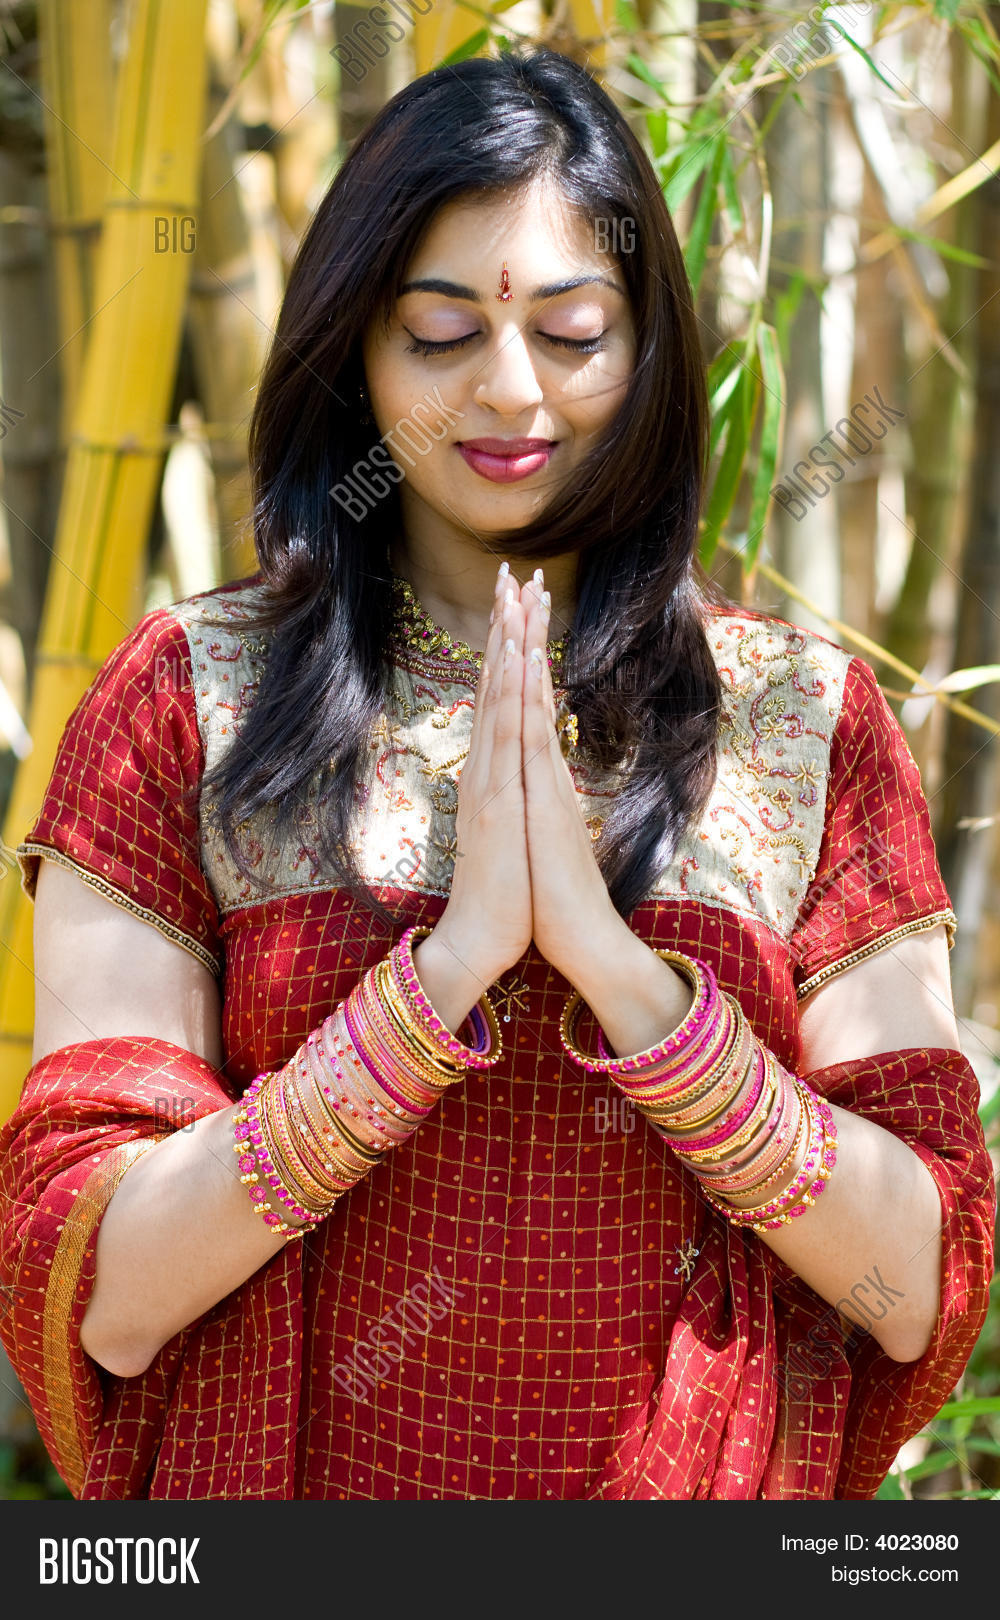 henryetta hindu single women Join our site and contact beautiful hindu girls to you can make new hot and single girl in edmond, oklahoma, united states to all photo of lonely women.